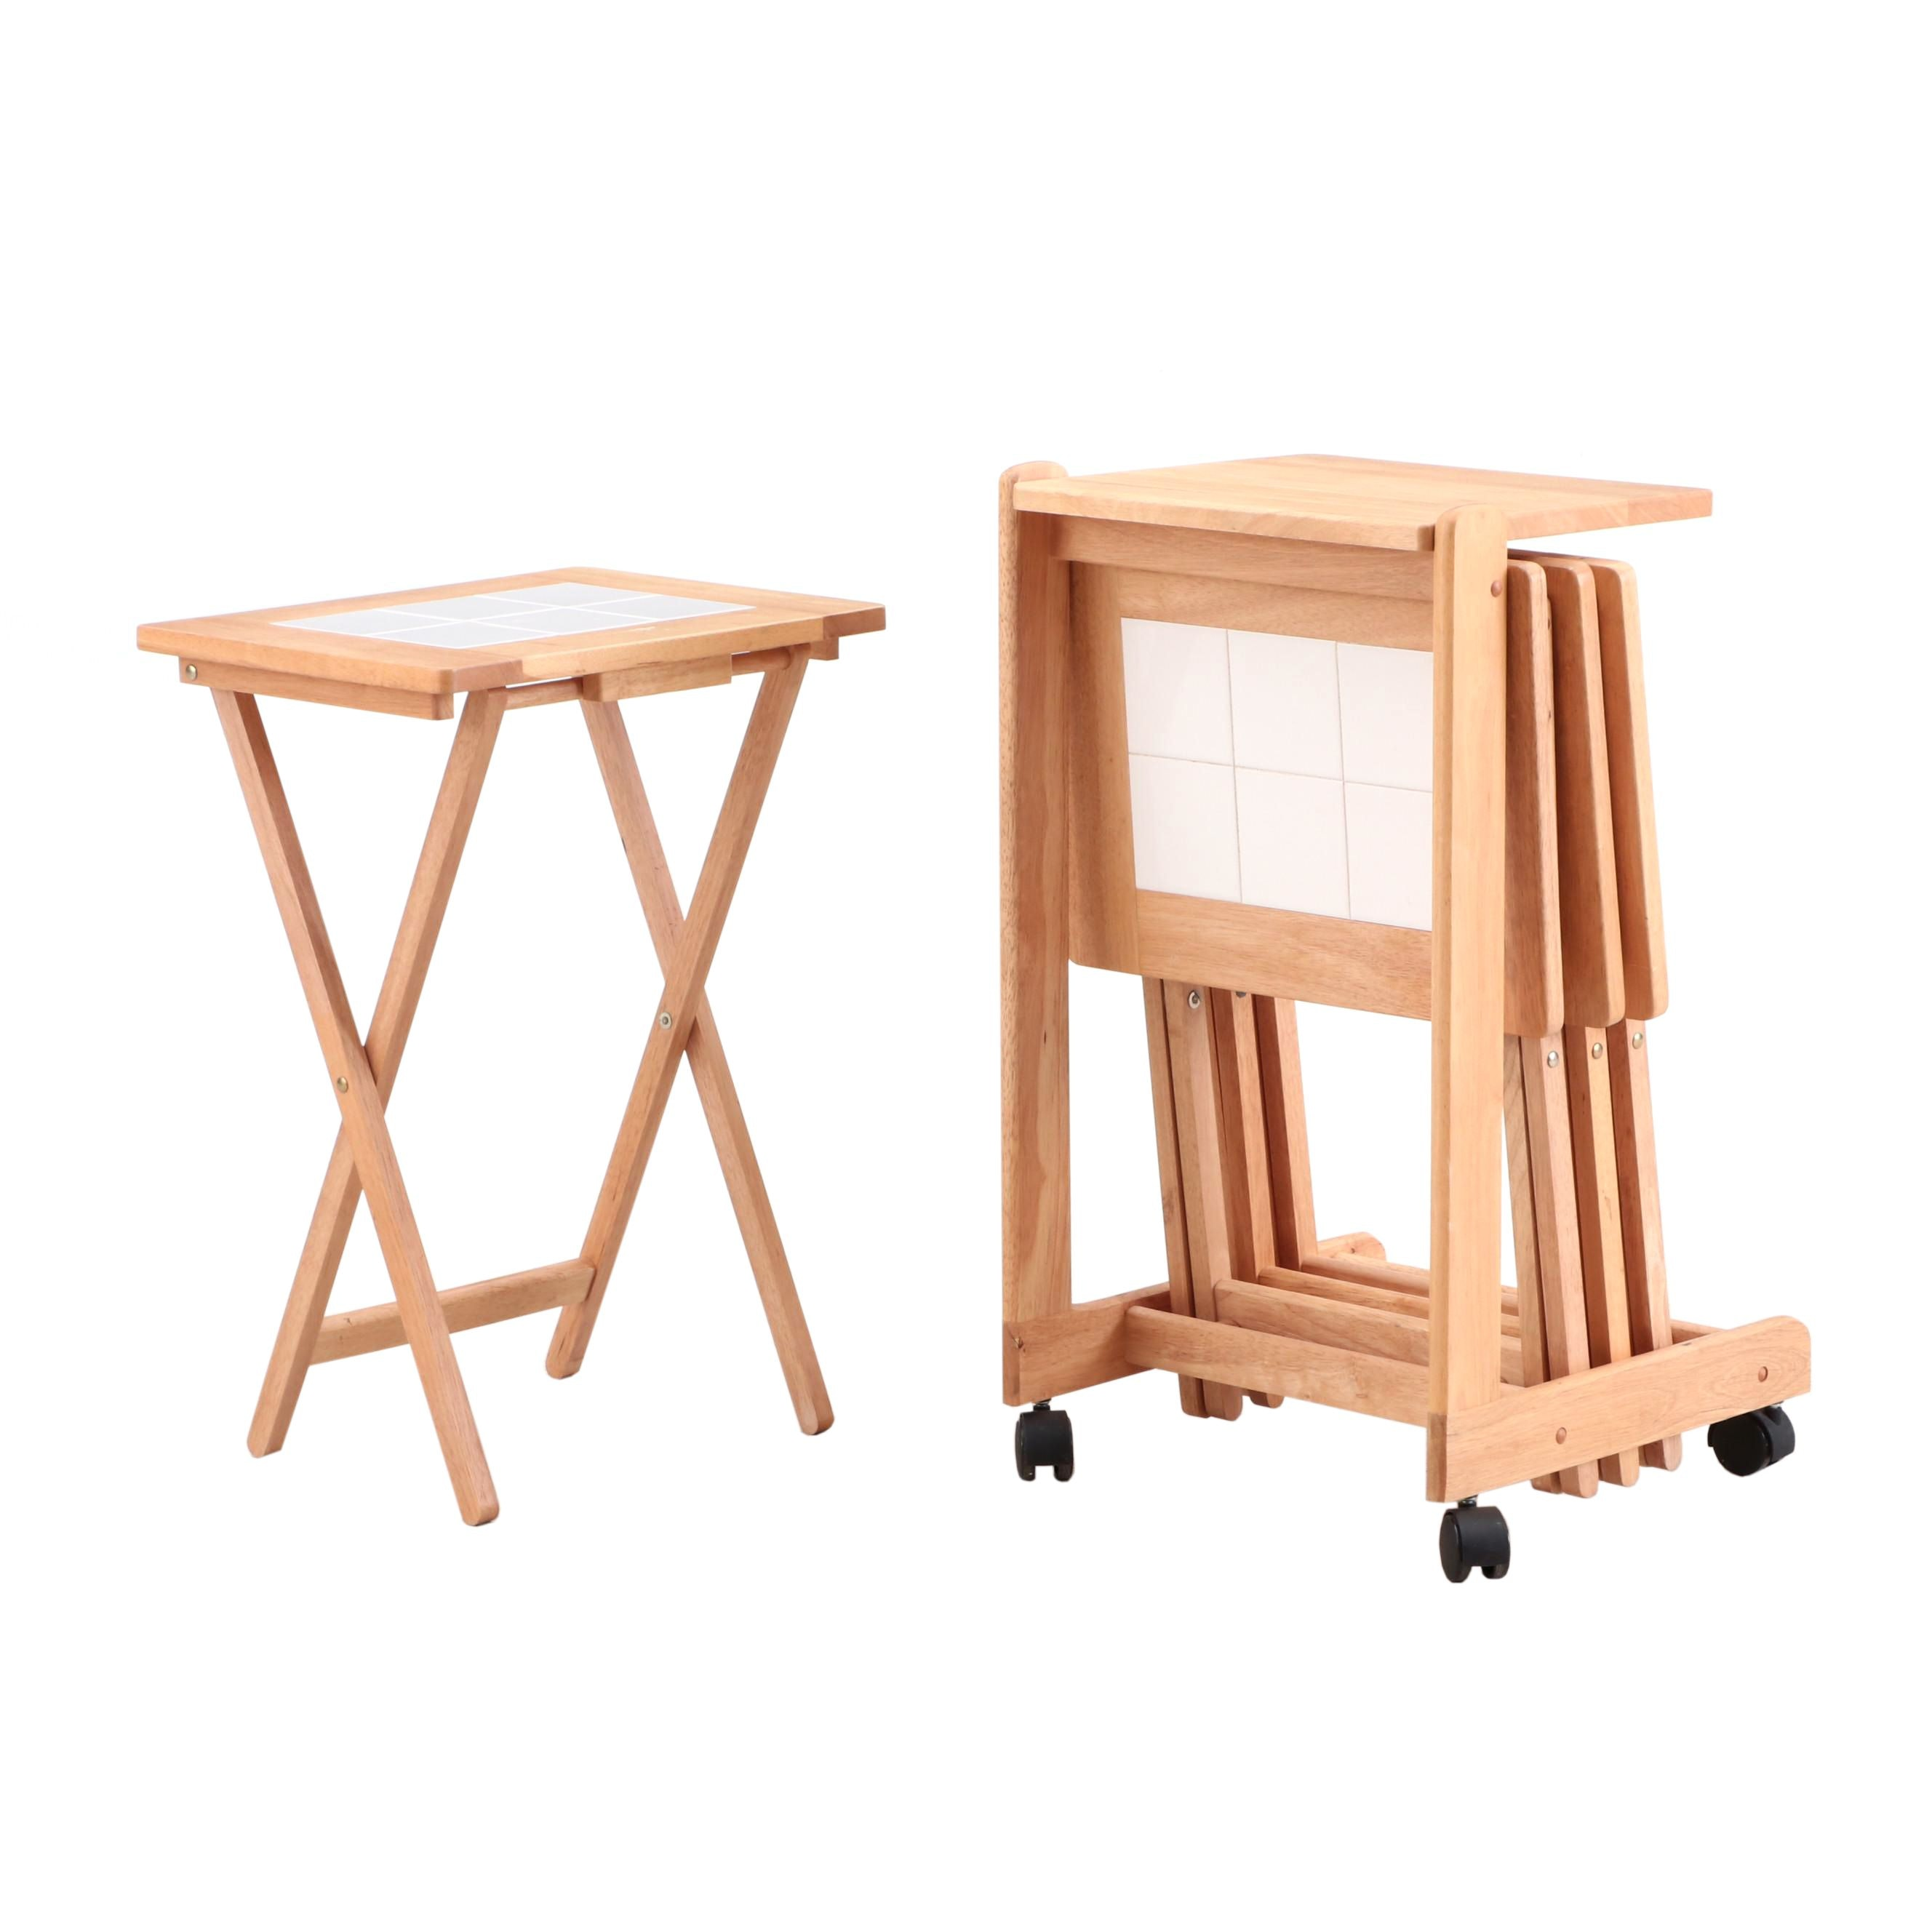 Tile Top Folding Tables and Storage Cart